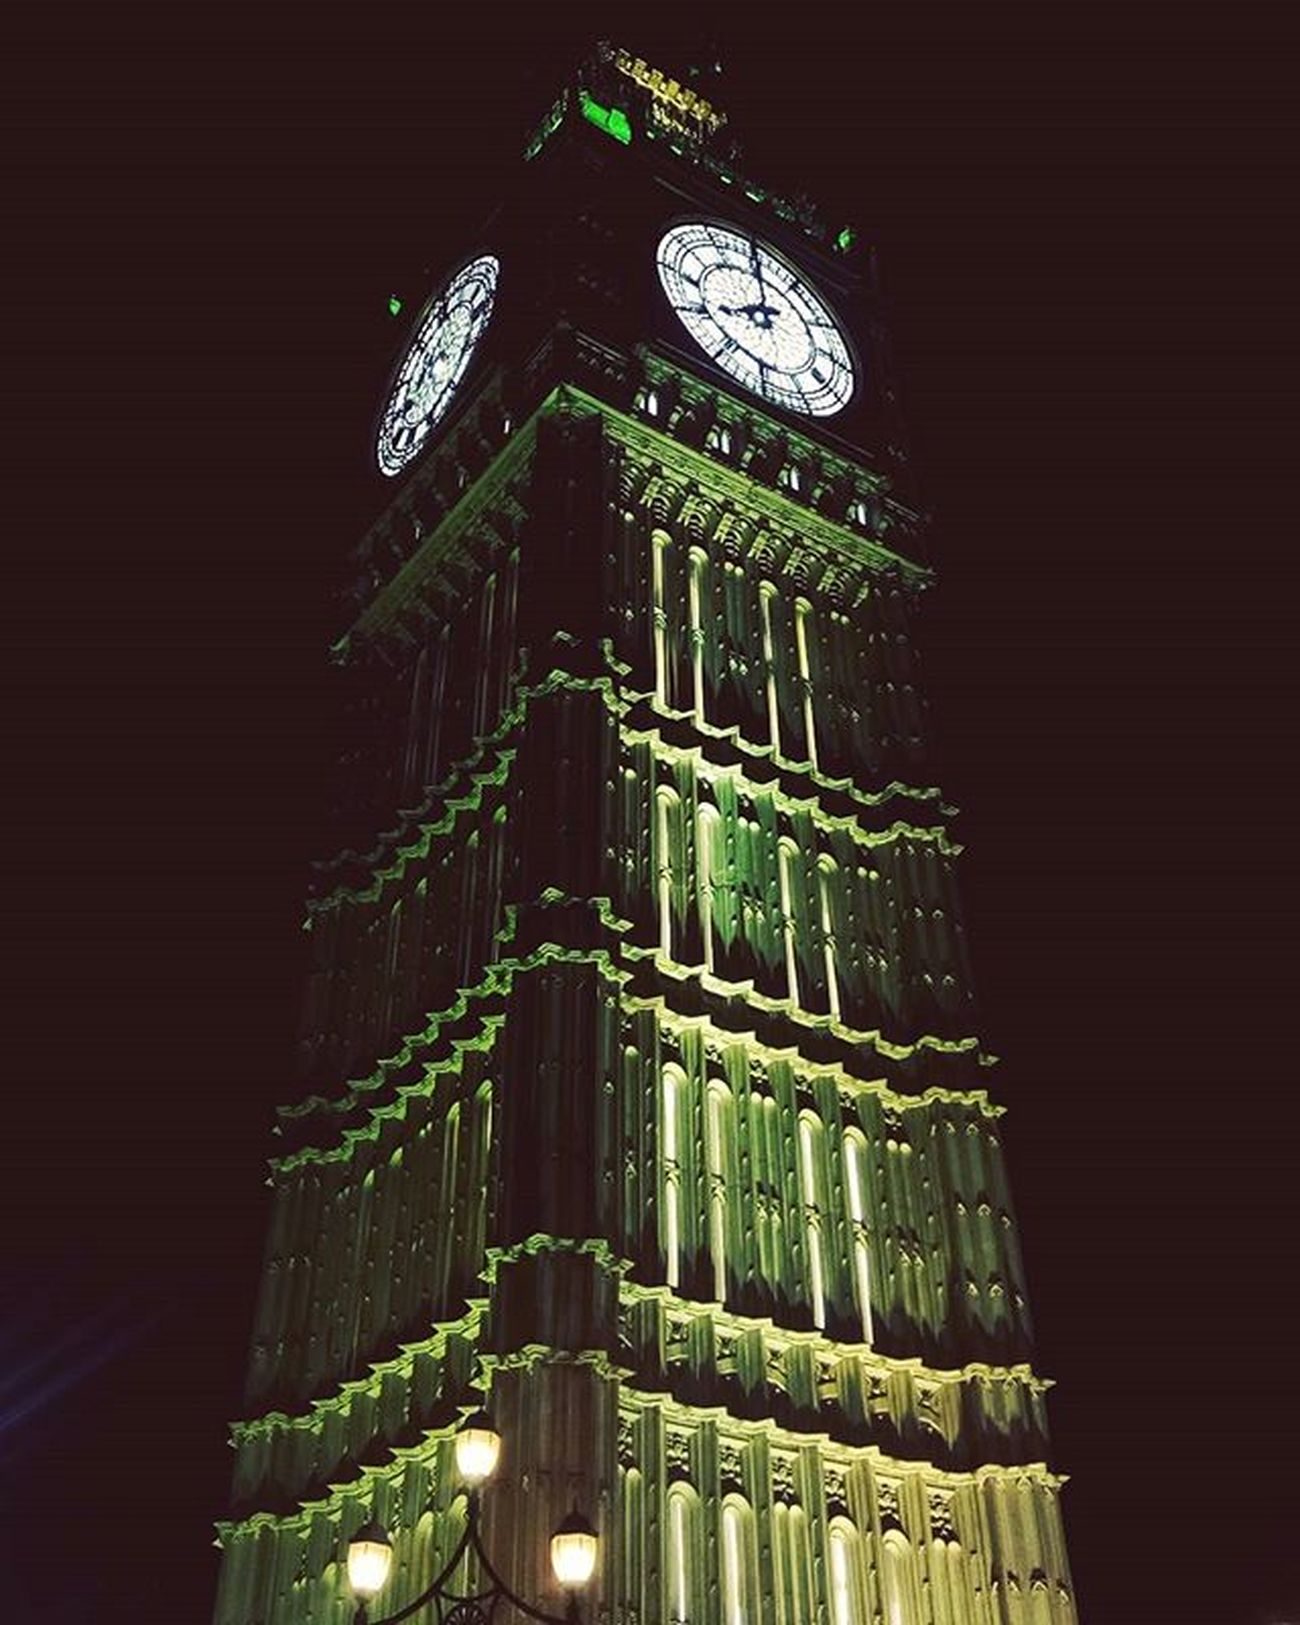 I love doing photography & here is my another night out shot.... what you guys think let me know 😊 💗 Photooftheday Pic Perfect Night Shooting Indianbigben Laketown Kolkata Bigben Streetphotography Instagram Instashot Instapic Camera 13mp Happy Trancefamily Trance Trancemusic AlwaysTrance India Indiantrance